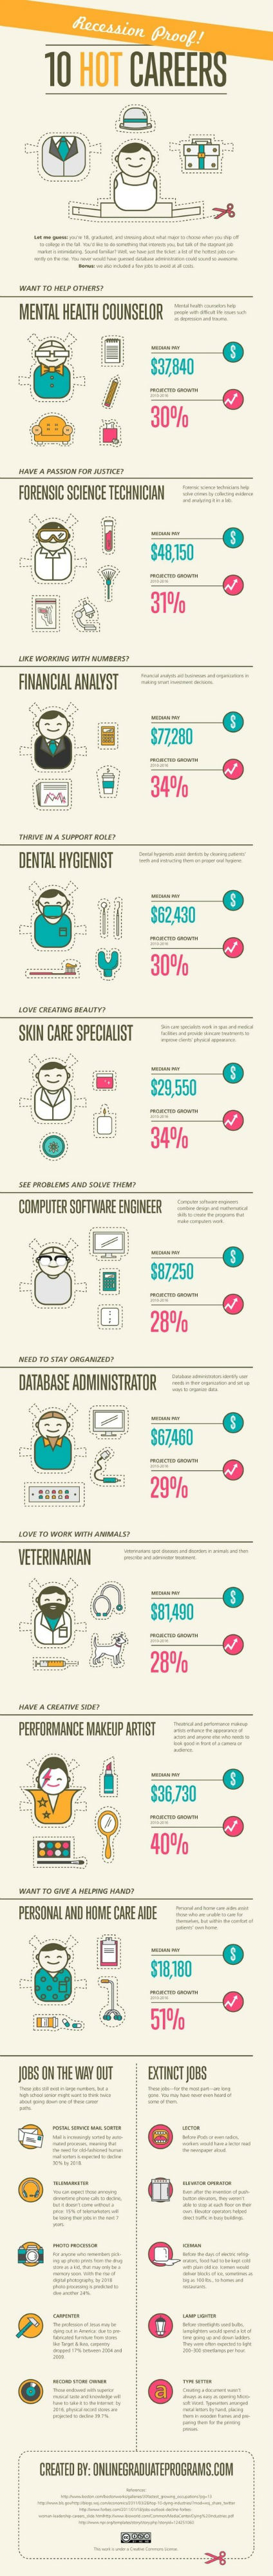 10 Hot Careers [Infographic]